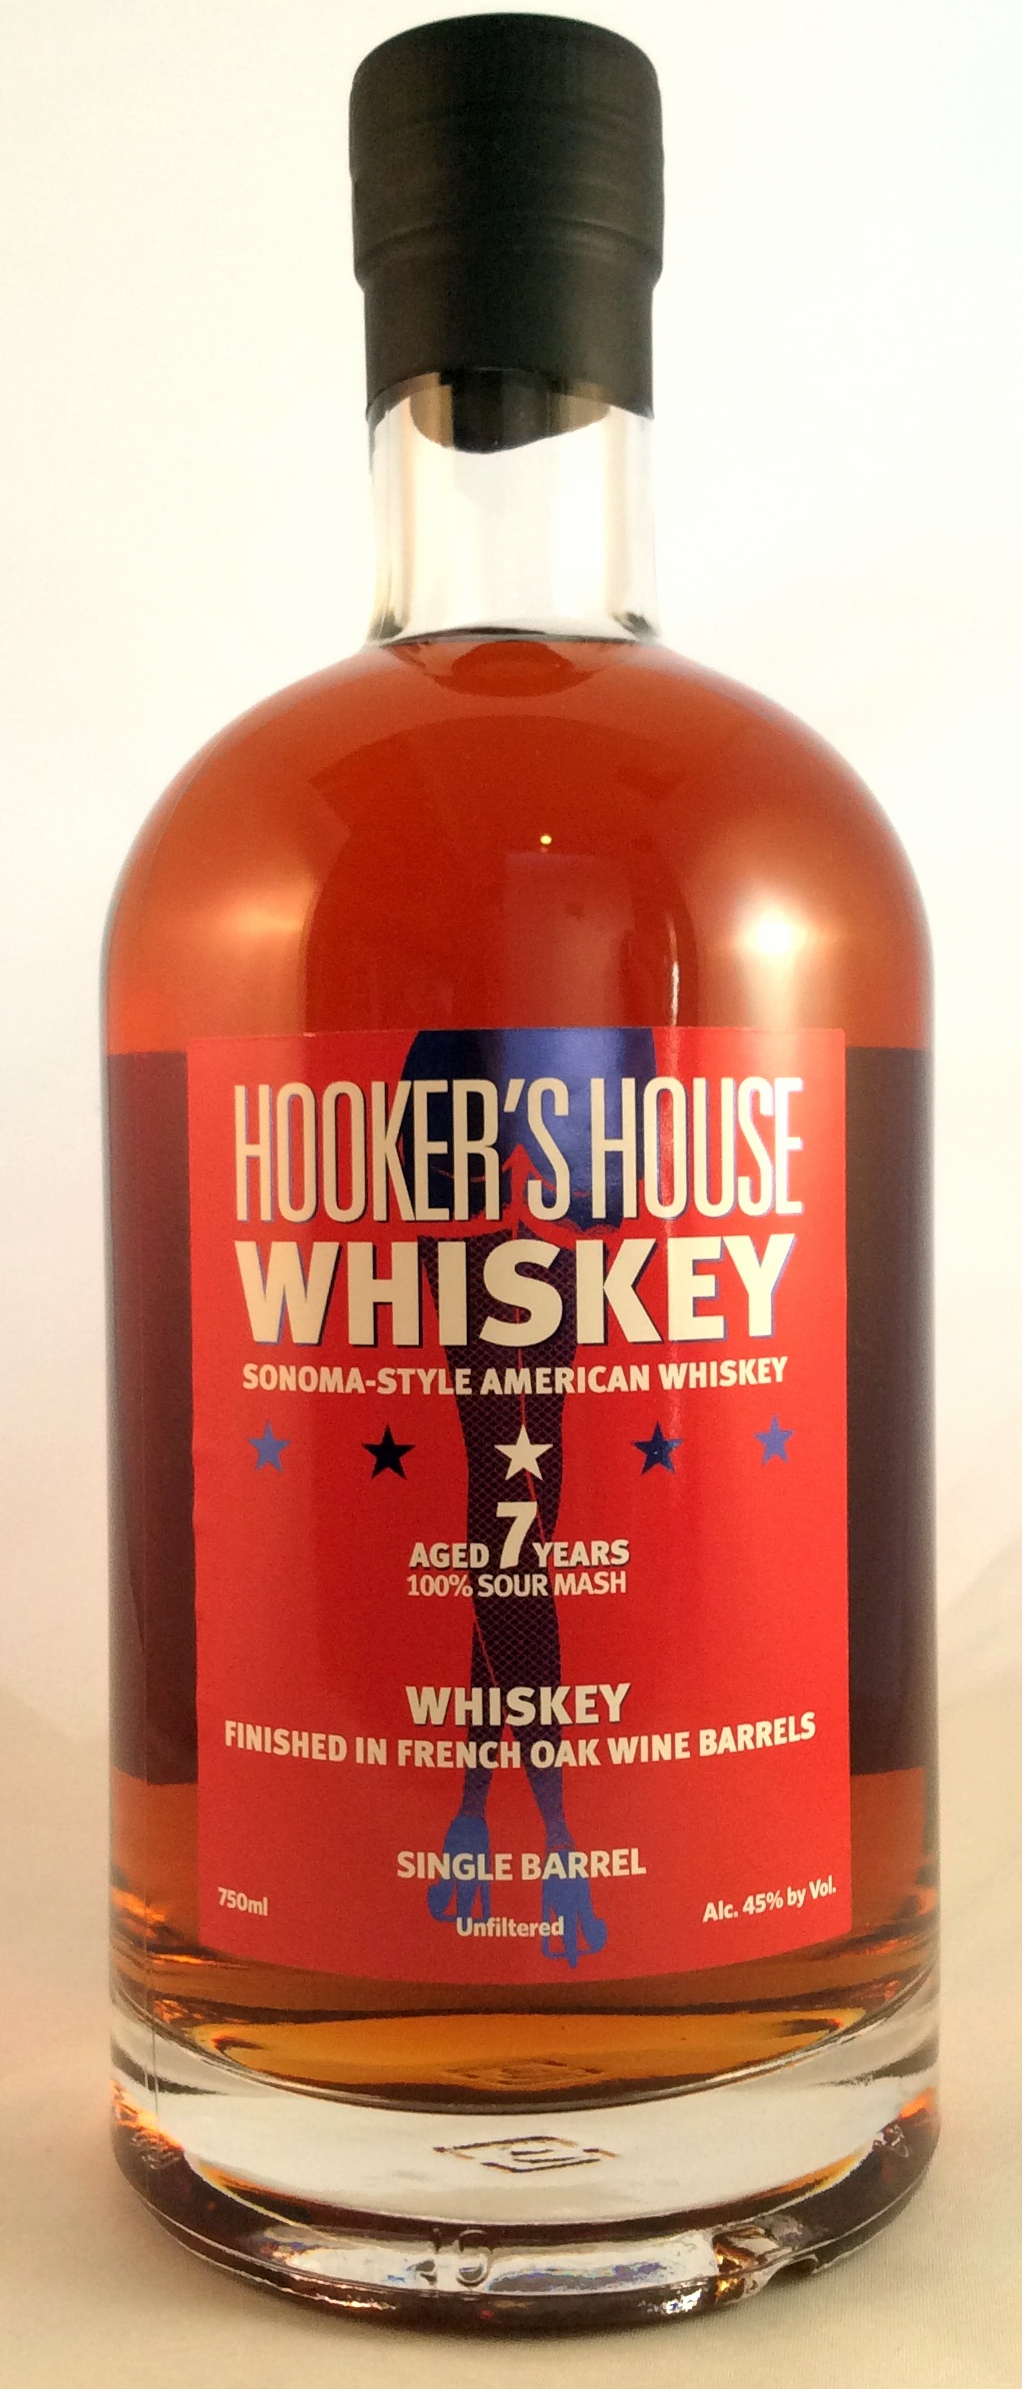 Hooker's House Sour Mash Whiskey 7 Years Old